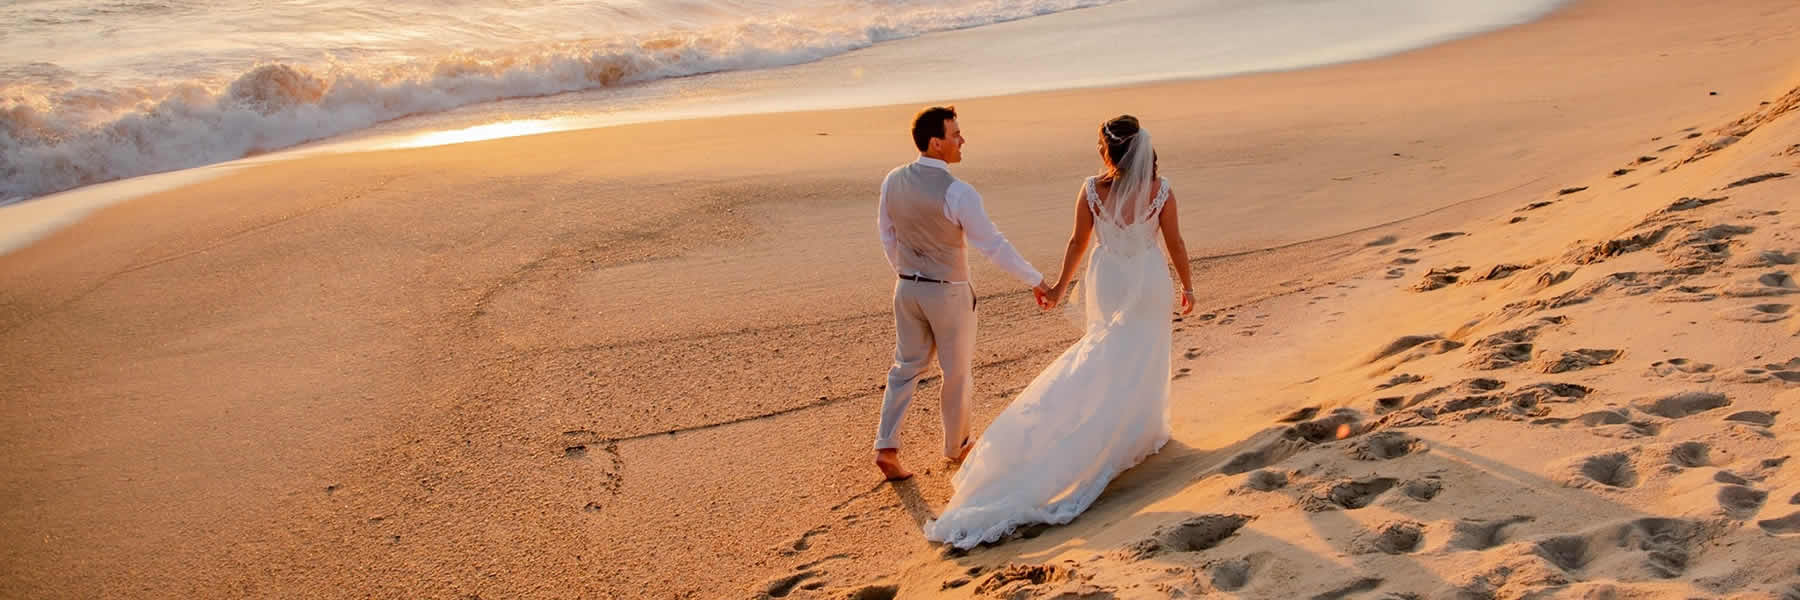 Call Mode Travel Agency to help organize and book your destination wedding.